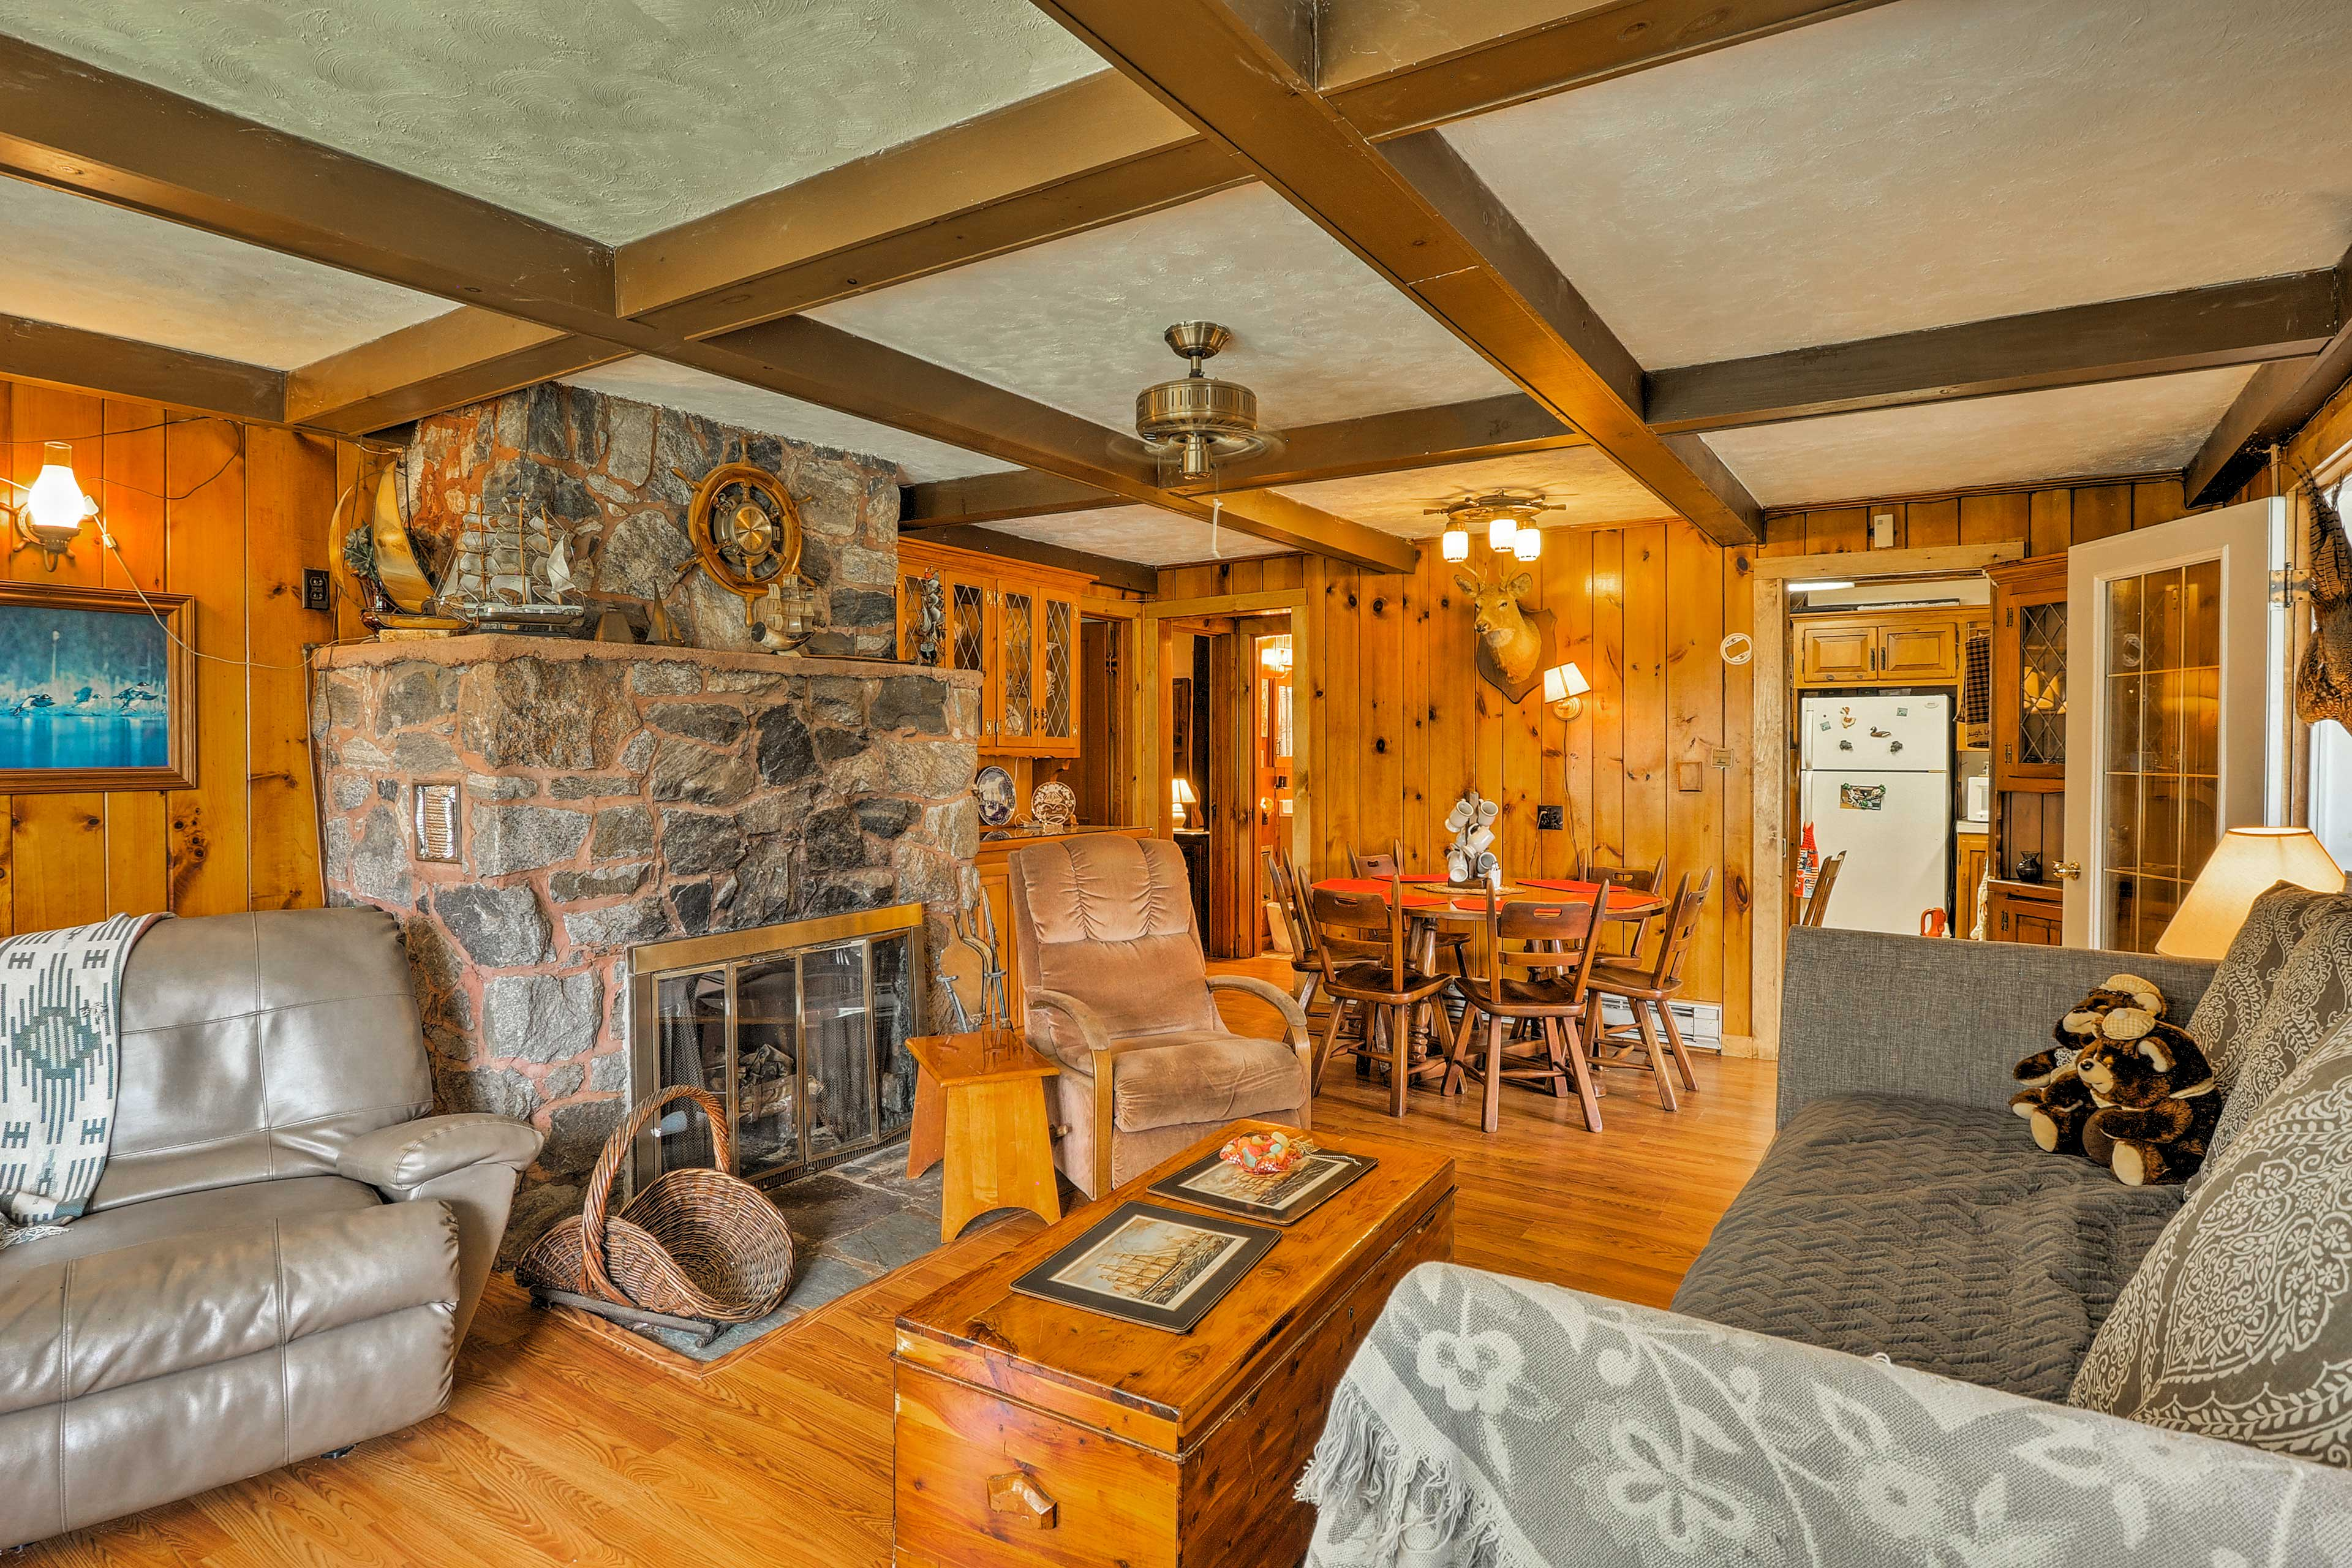 Rustic decor and comfortable furnishings invite you to make yourself at home.